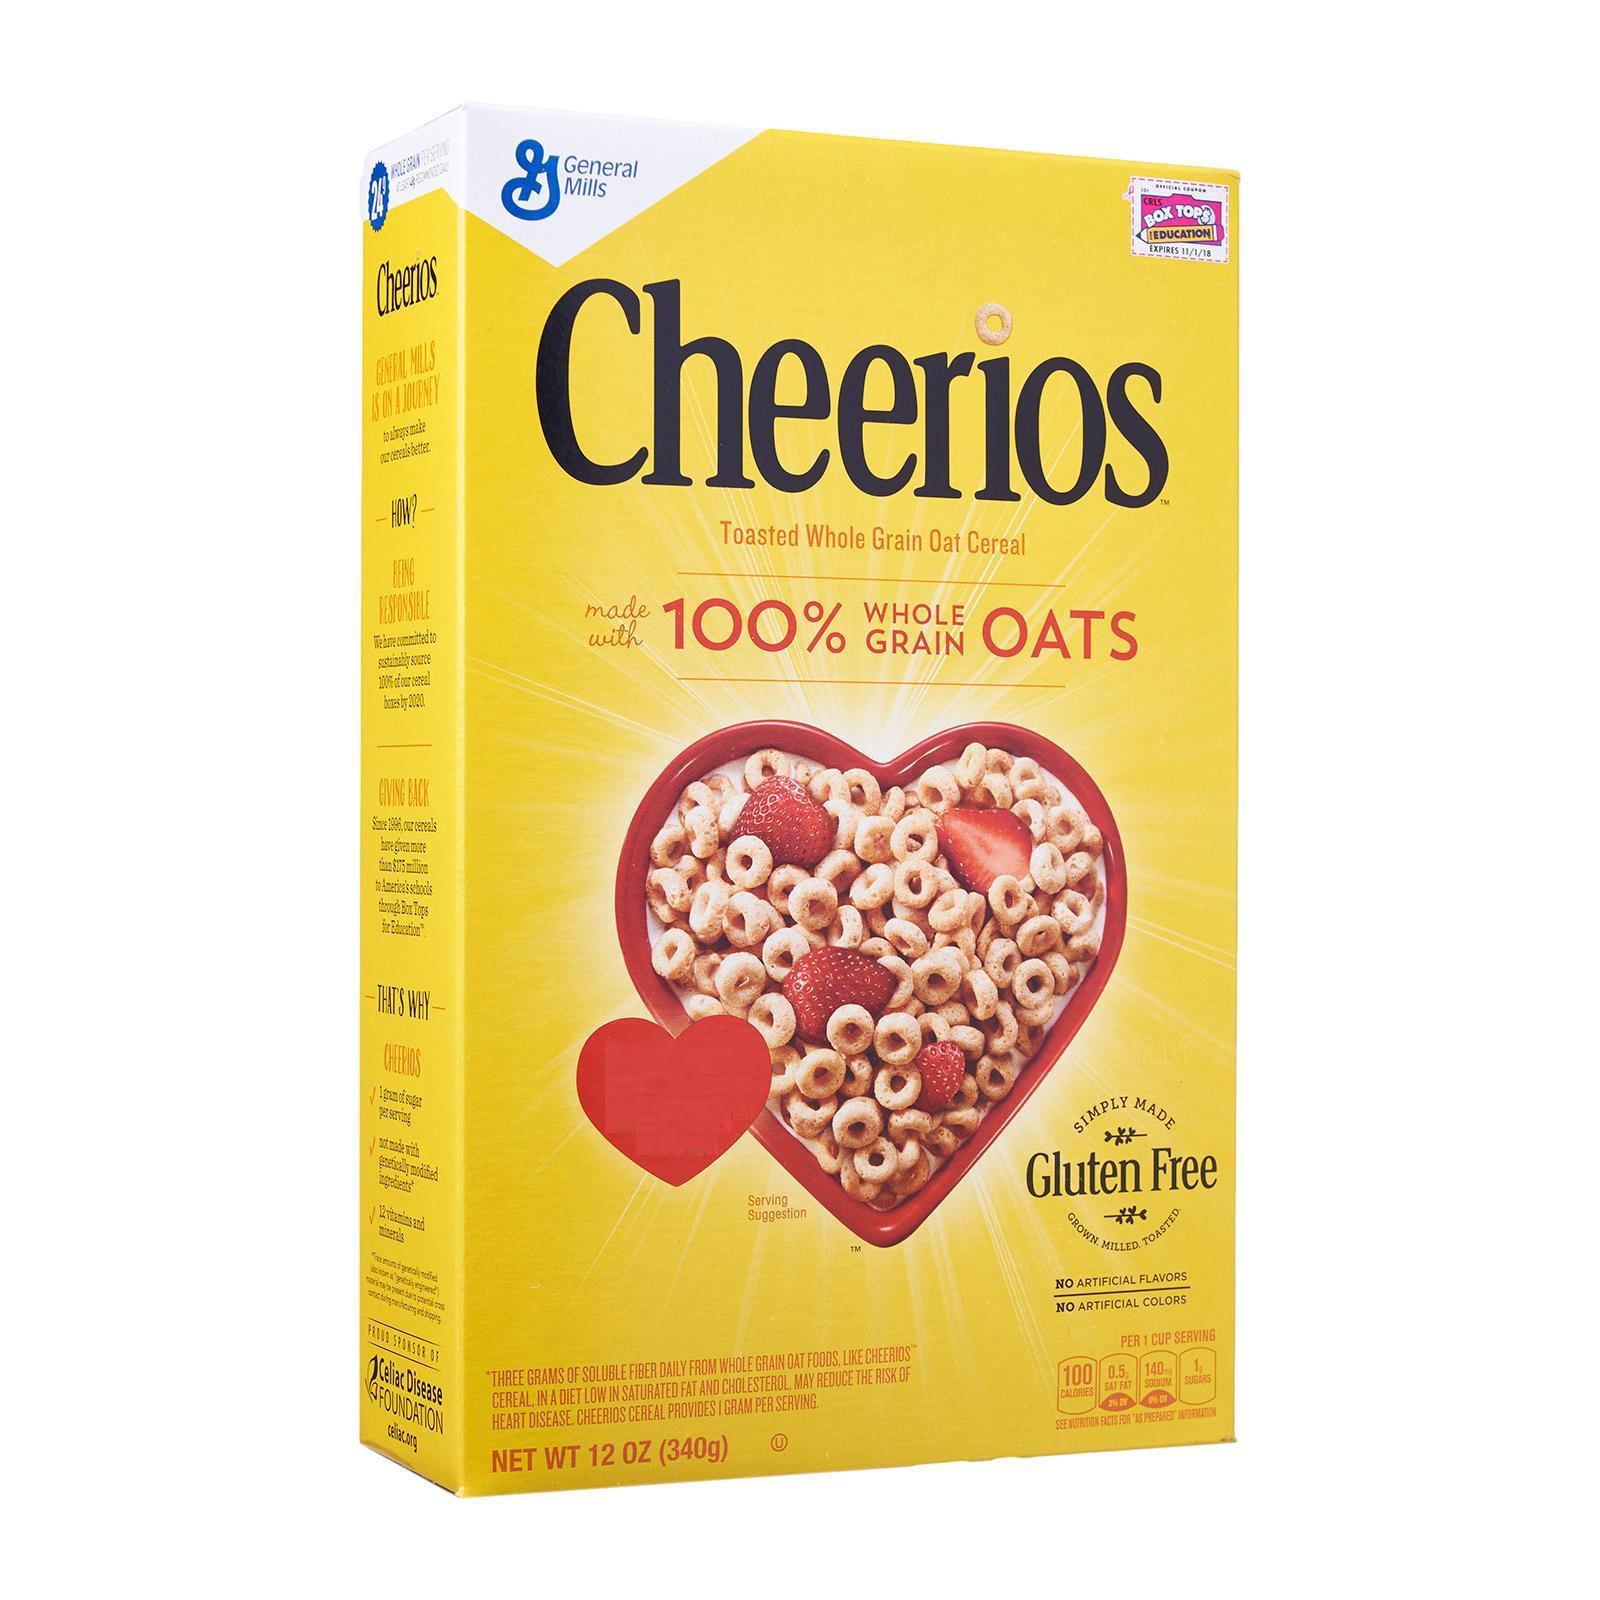 General Mills Cheerios Whole Grain Oats